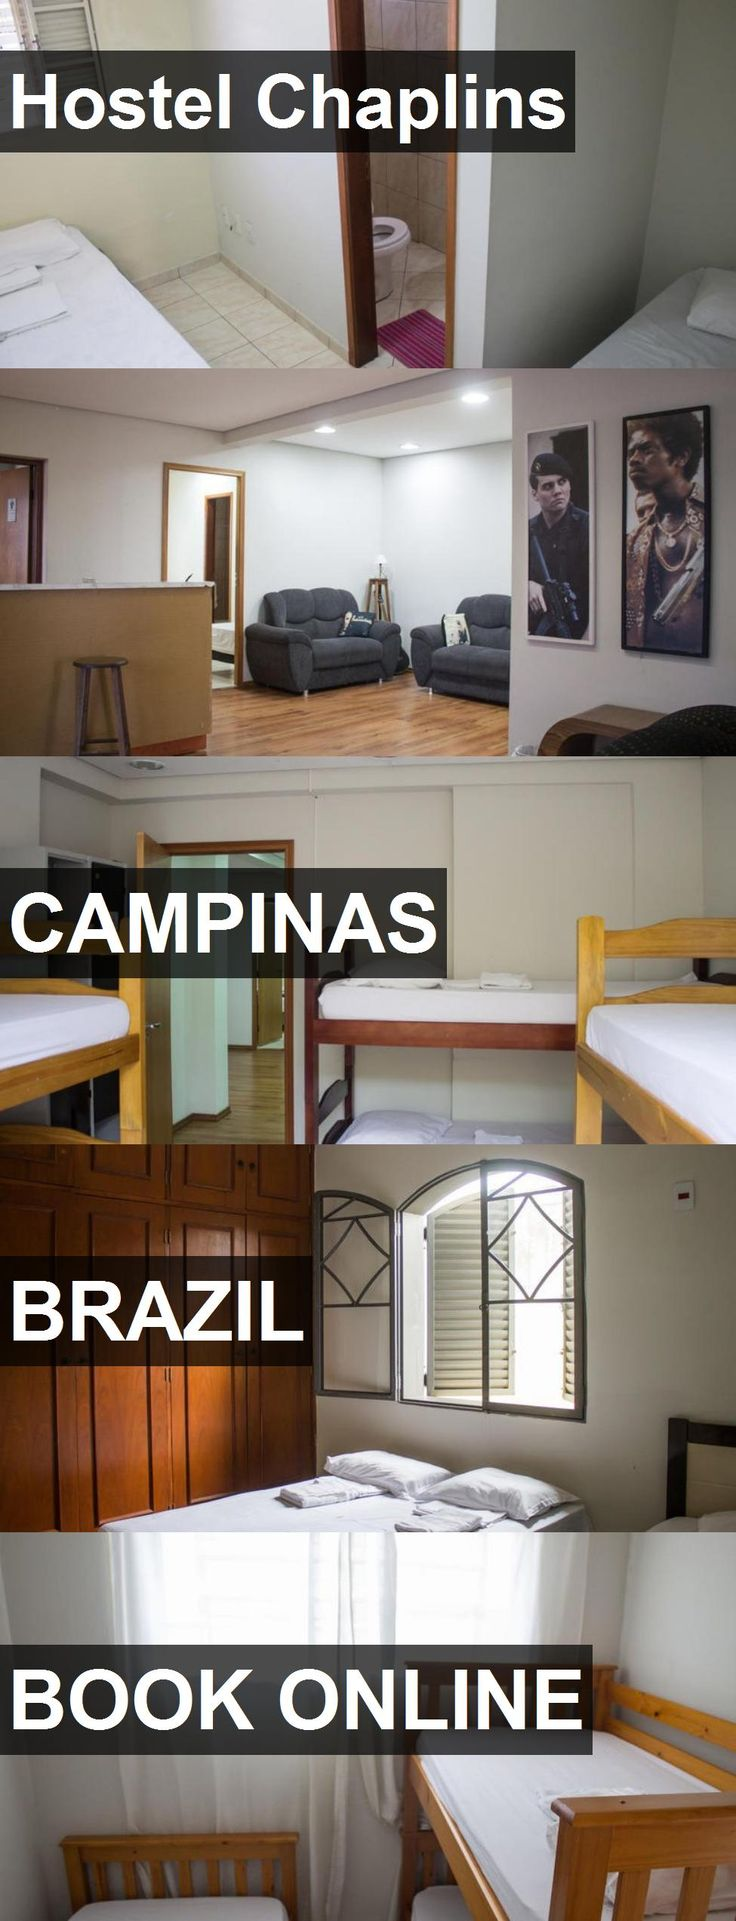 Hotel Hostel Chaplins in Campinas, Brazil. For more information, photos, reviews and best prices please follow the link. #Brazil #Campinas #hotel #travel #vacation